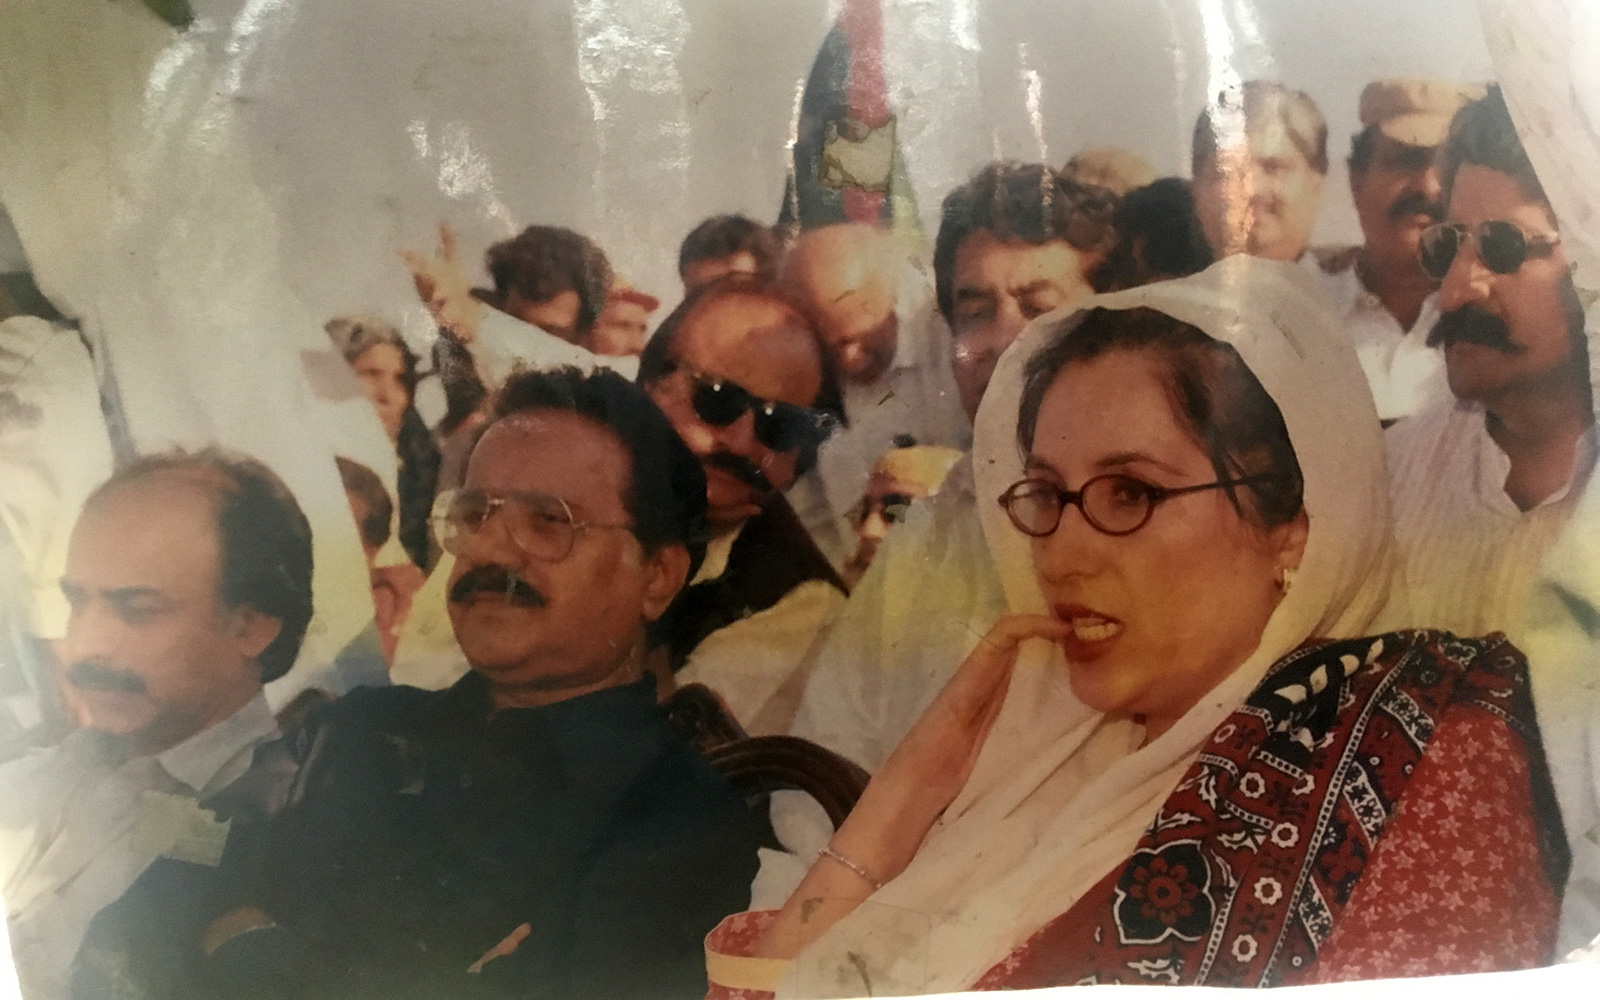 Benazir Bhutto did not die from shots or blast - Telegraph Benazir bhutto autopsy photos